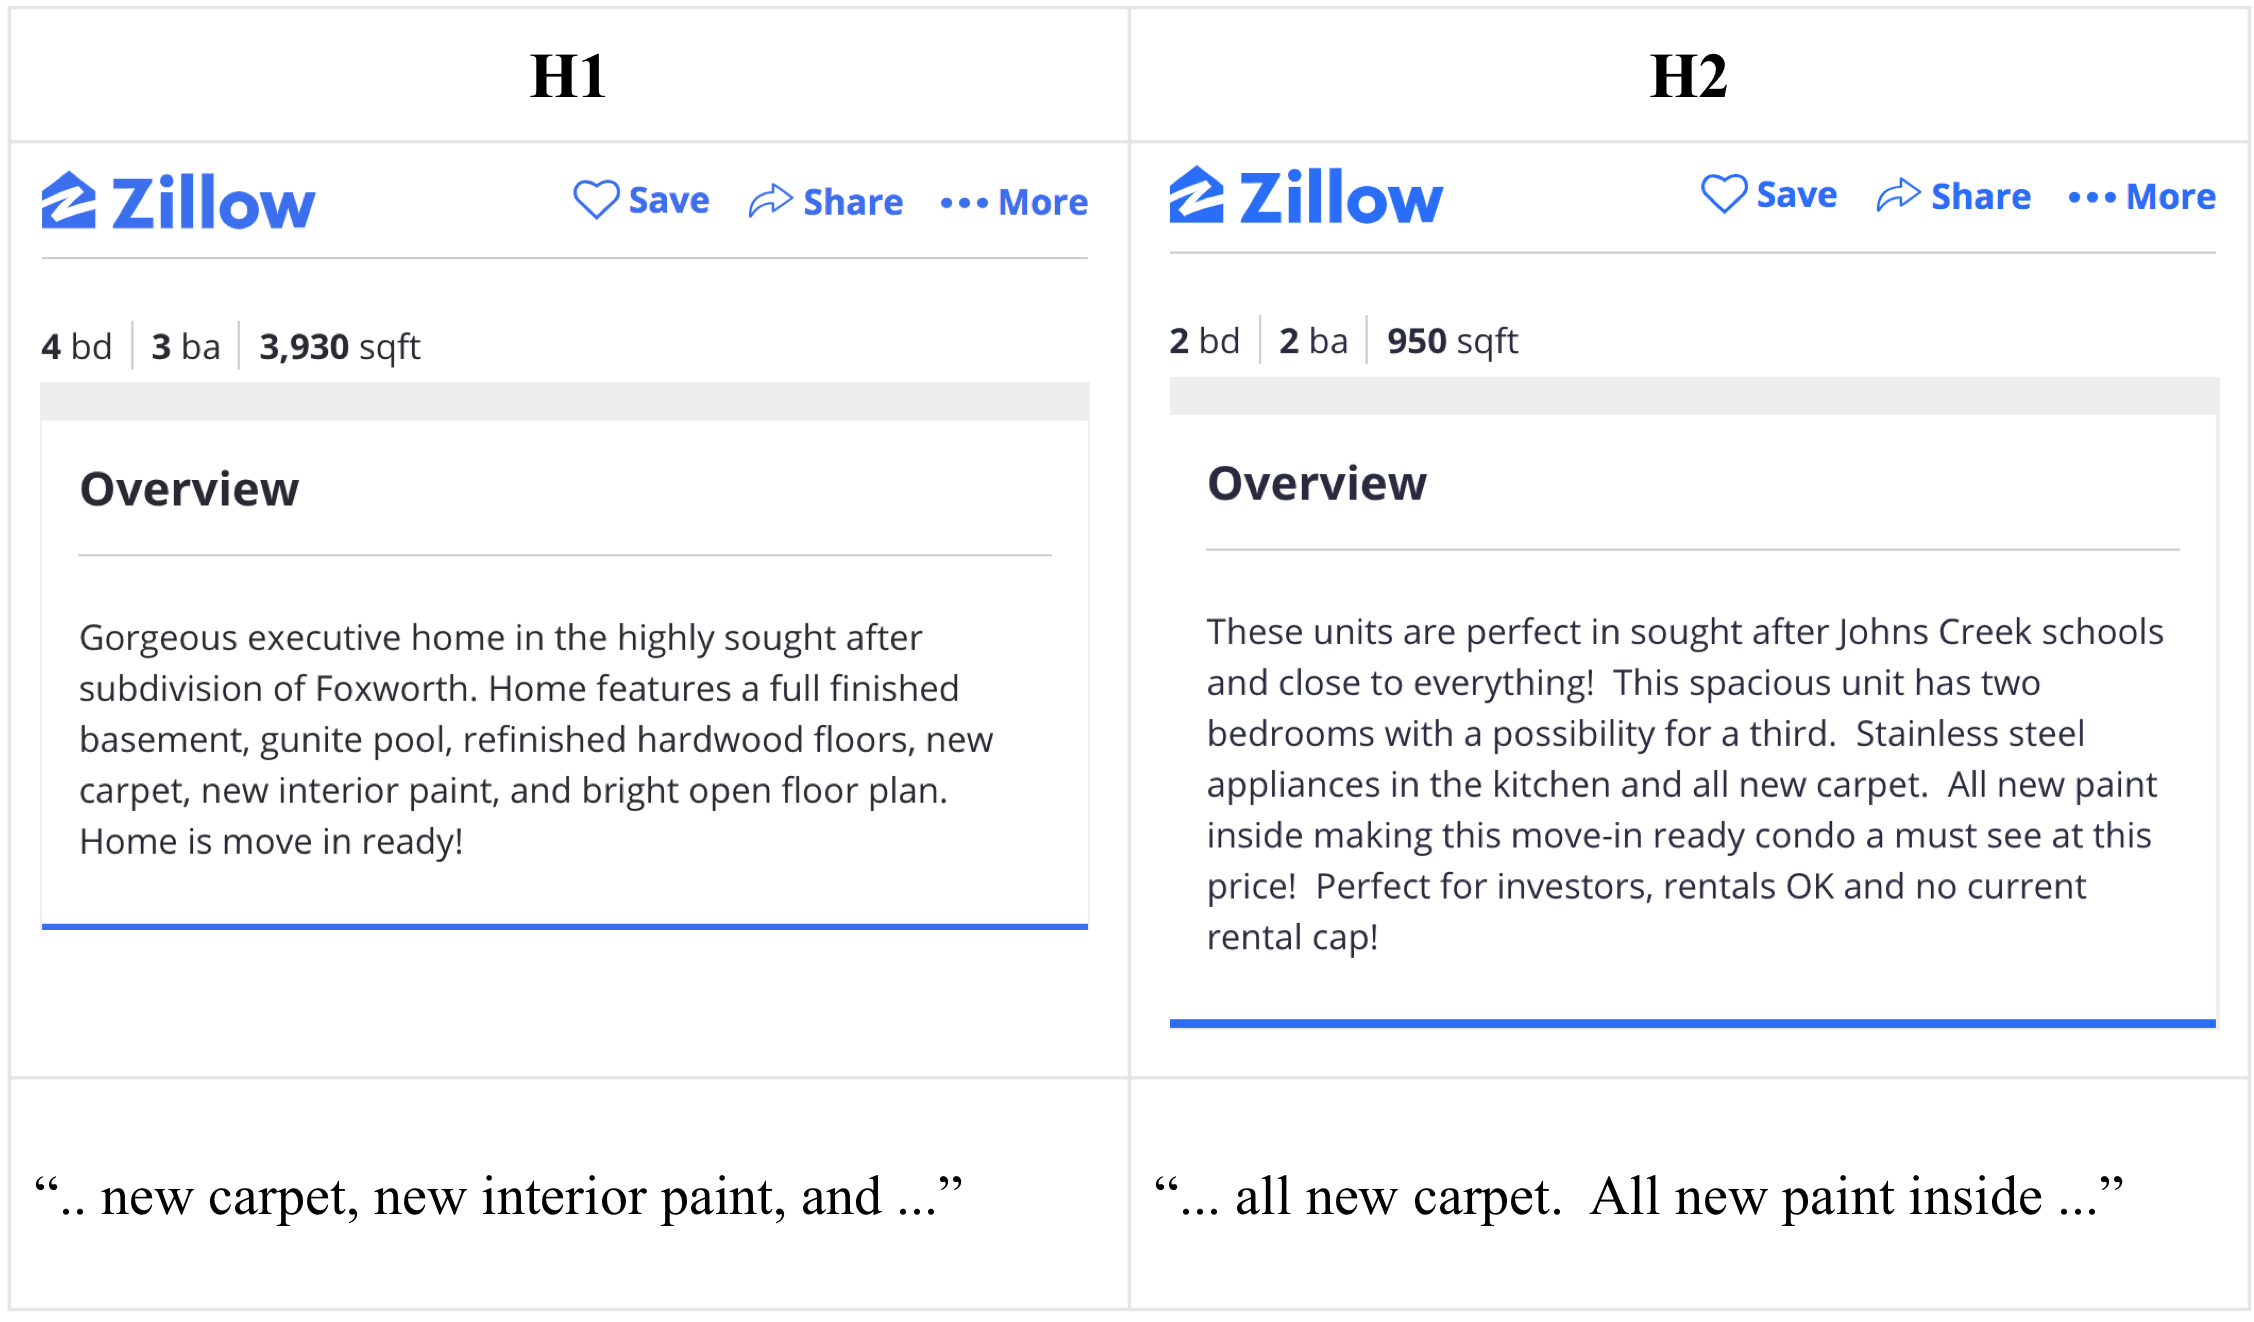 Topic Modeling for Real Estate Listing Descriptions - Zillow AI Blog